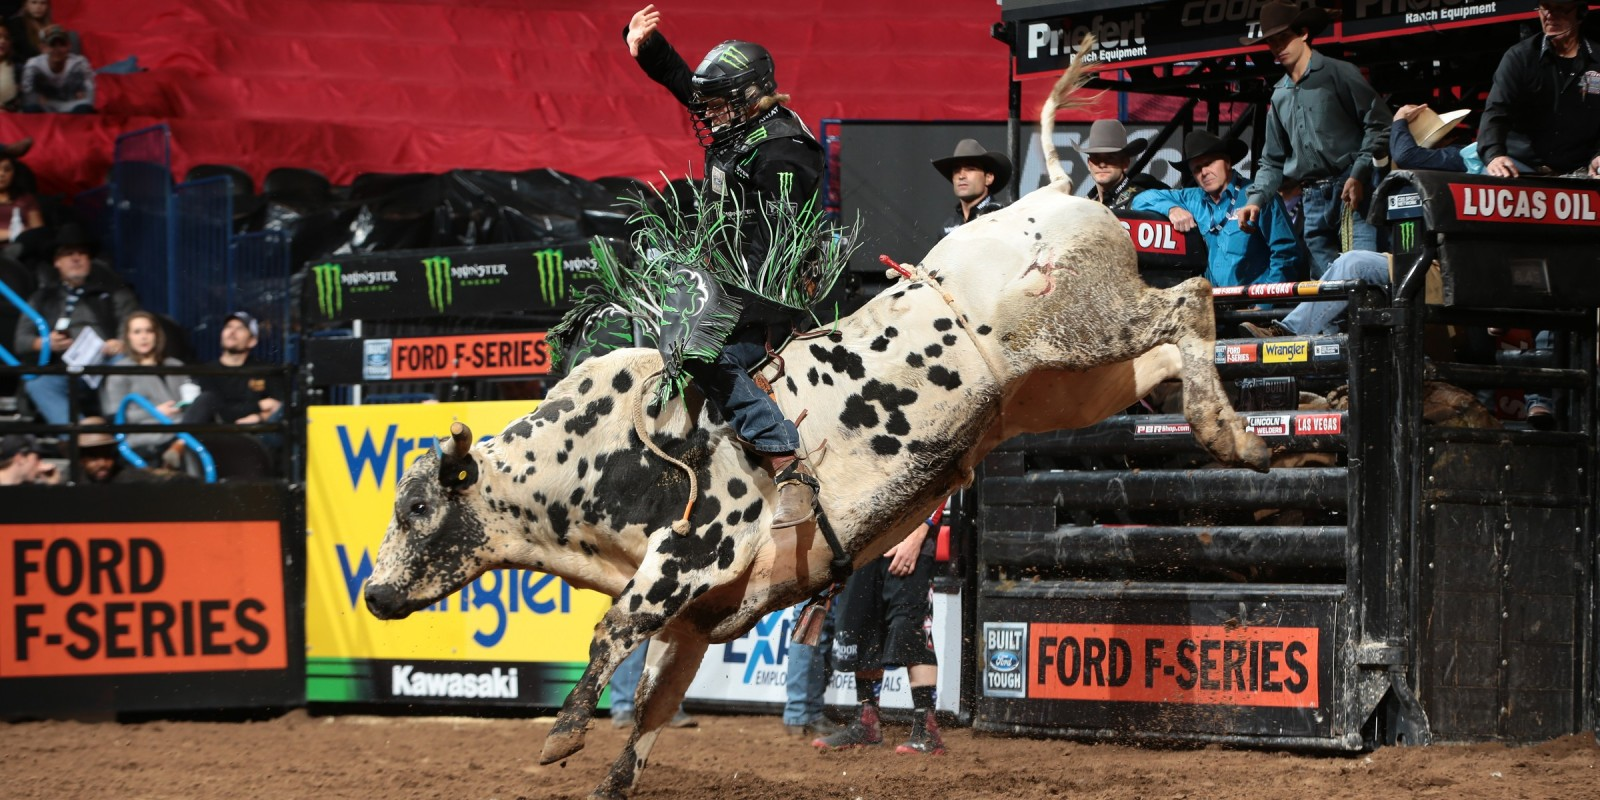 Derek Kolbaba rides JK Elite/Young Bird/Cord McCoy's JJ for 85.5 during the first round of the Oklahoma City Built Ford Tough series PBR